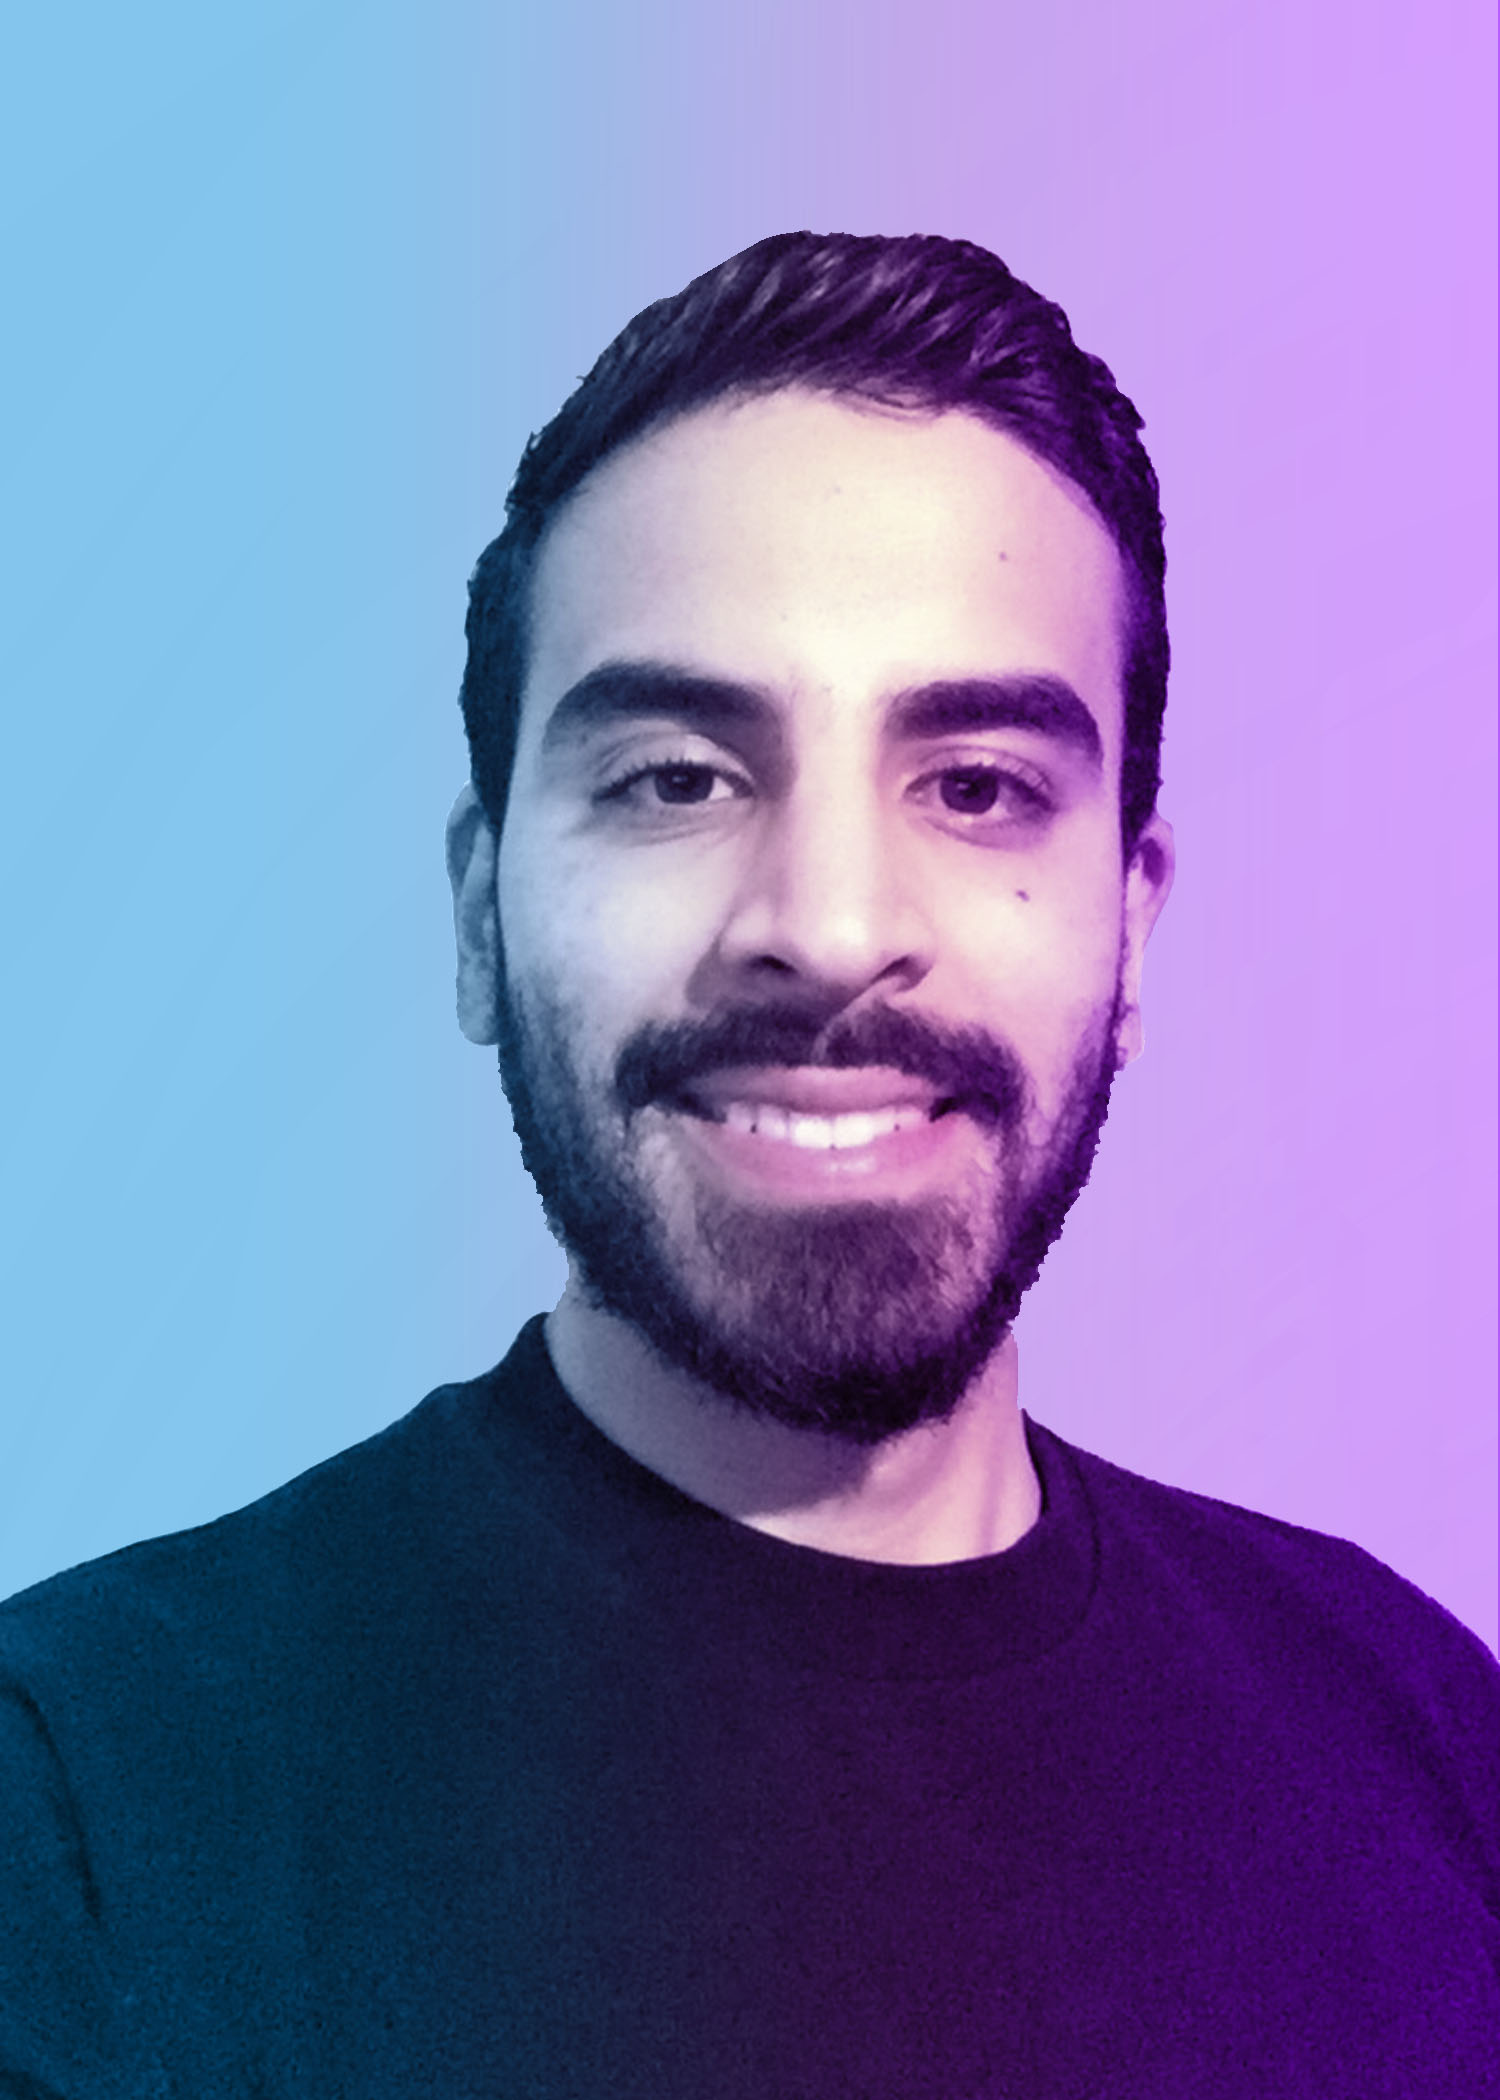 photo of smiling male college student with short dark. blue and purple overlay on photo.